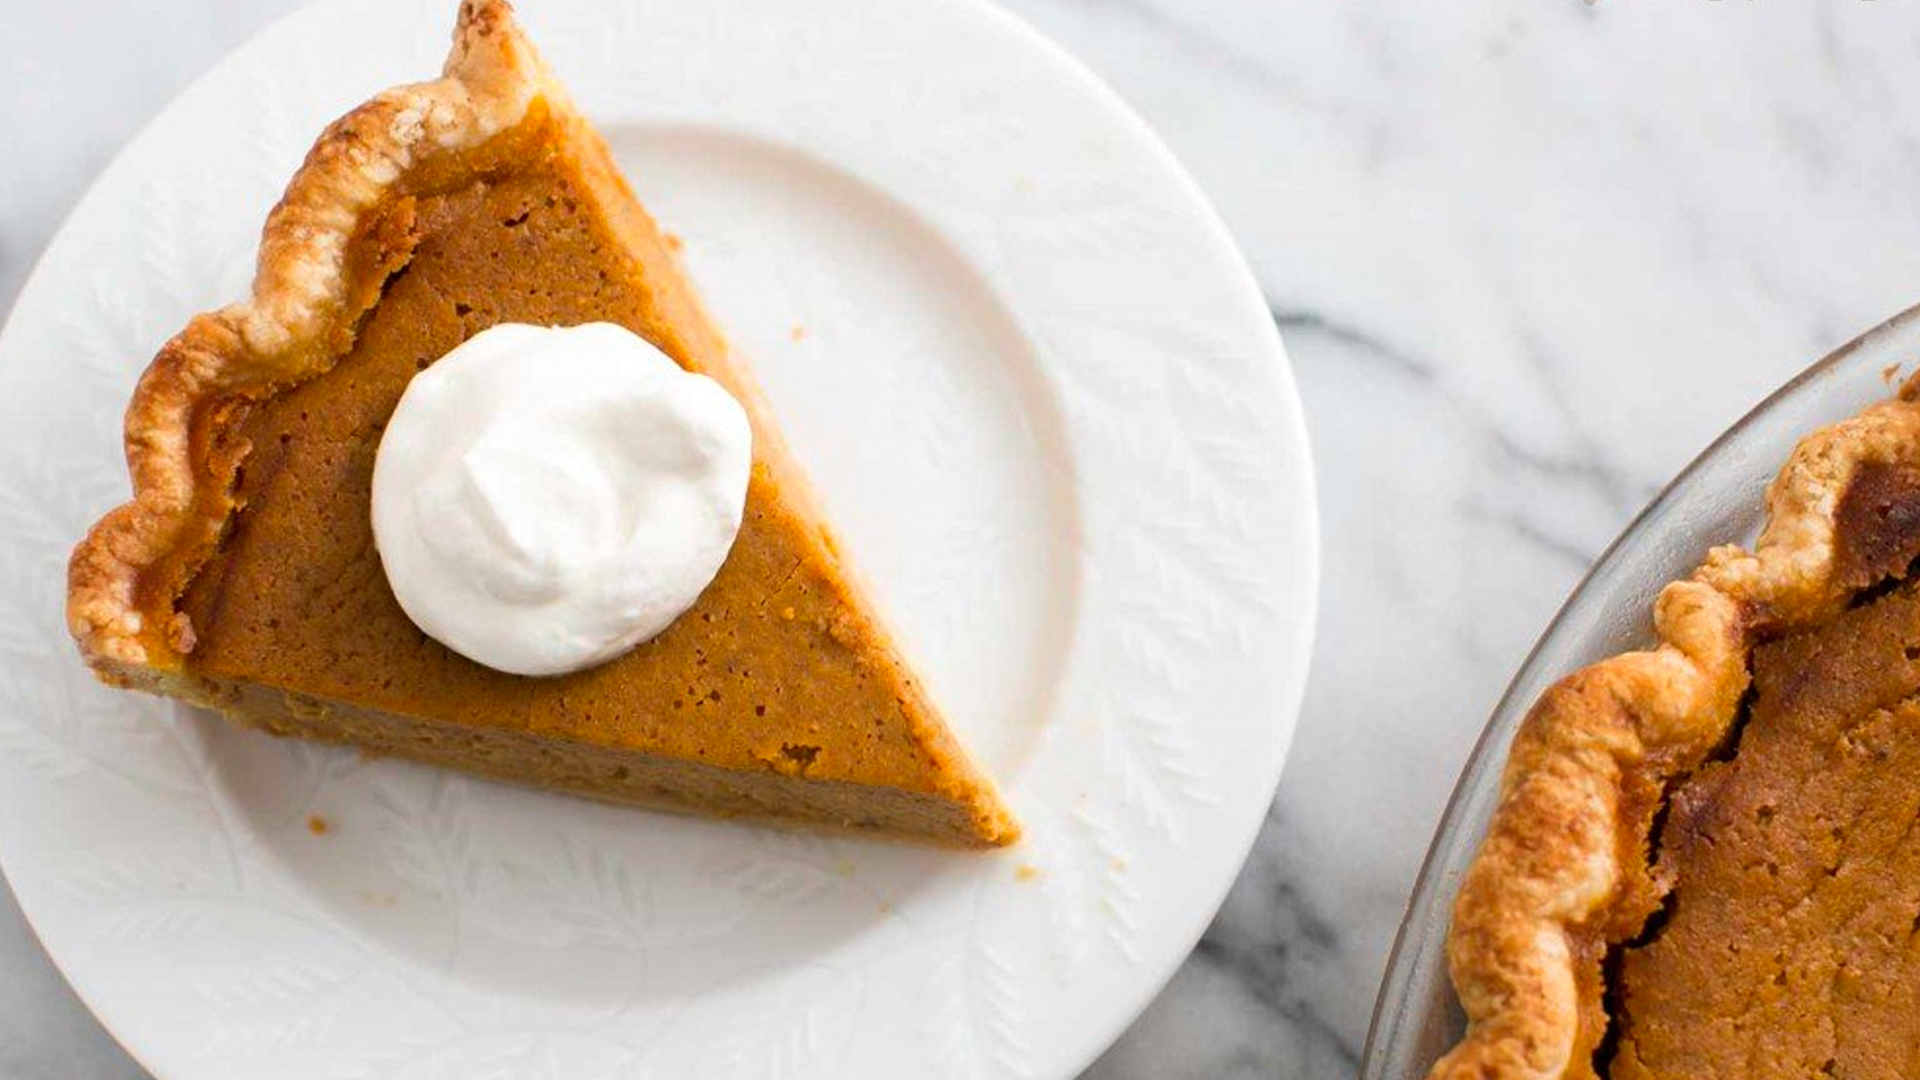 17 Classic Pie Recipes For The Ultimate Holiday Dessert